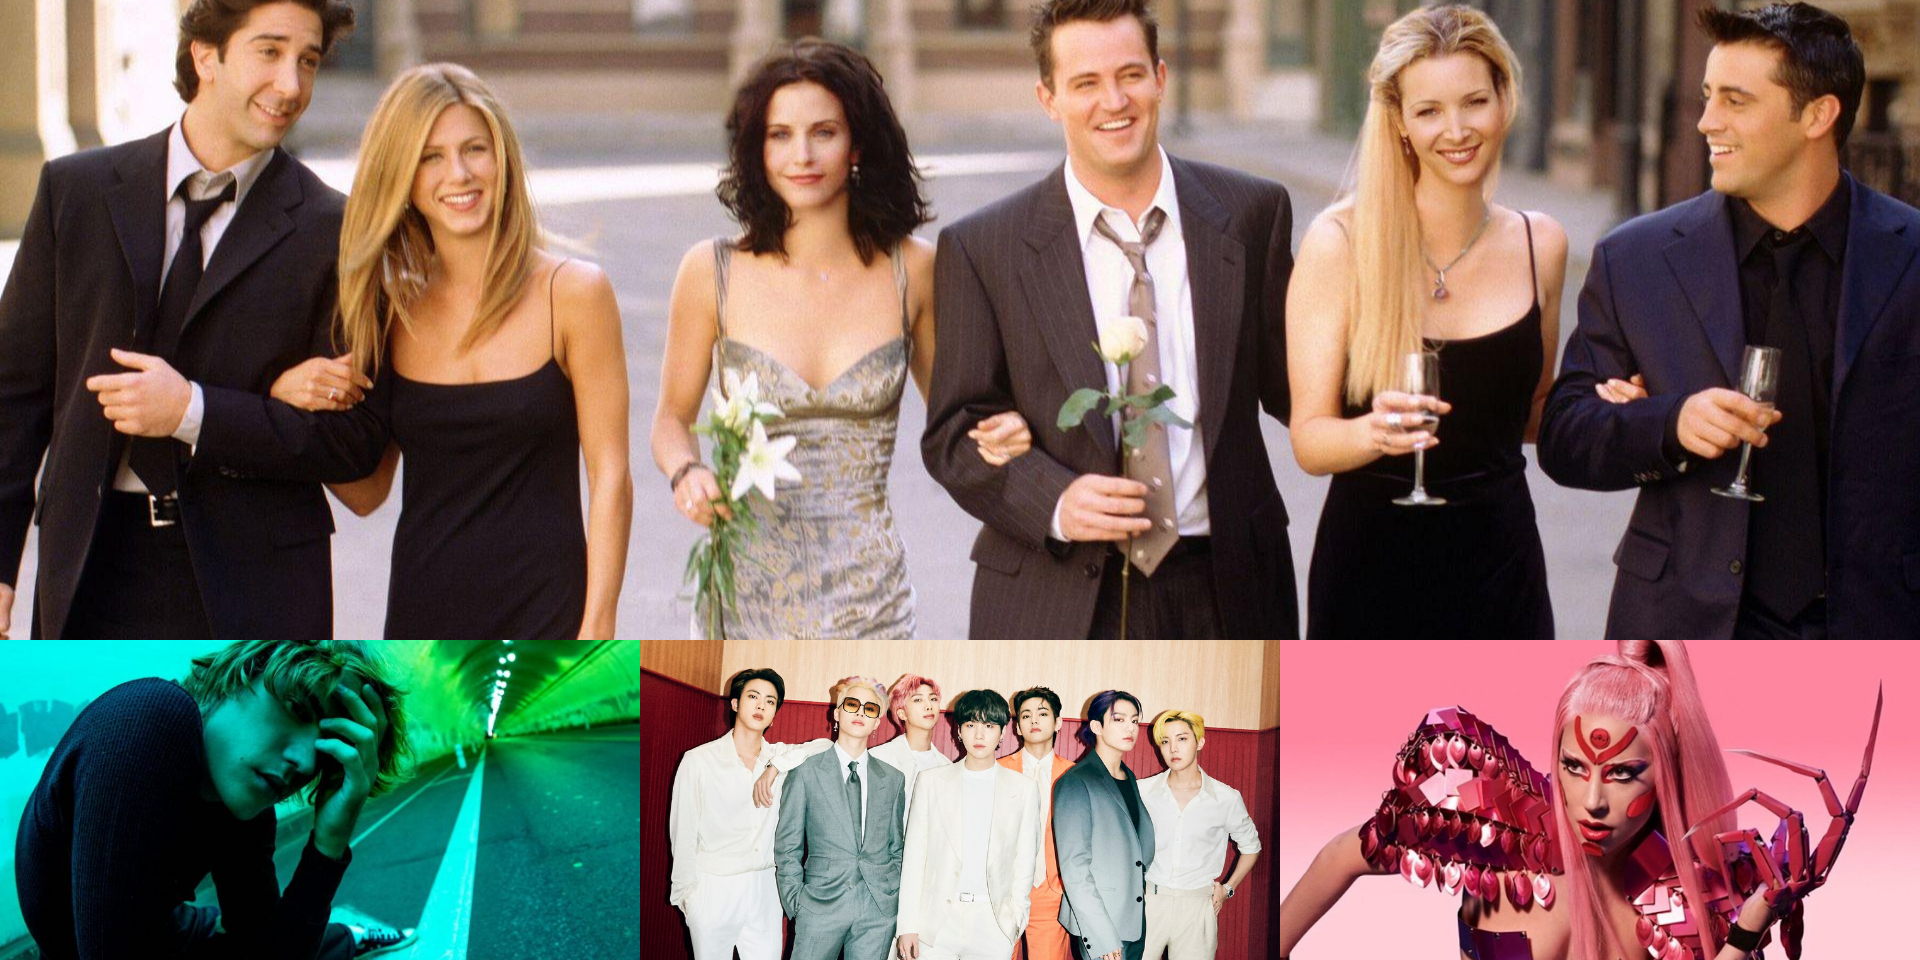 BTS, Justin Bieber, Lady Gaga, and more to appear on 'Friends: The Reunion'